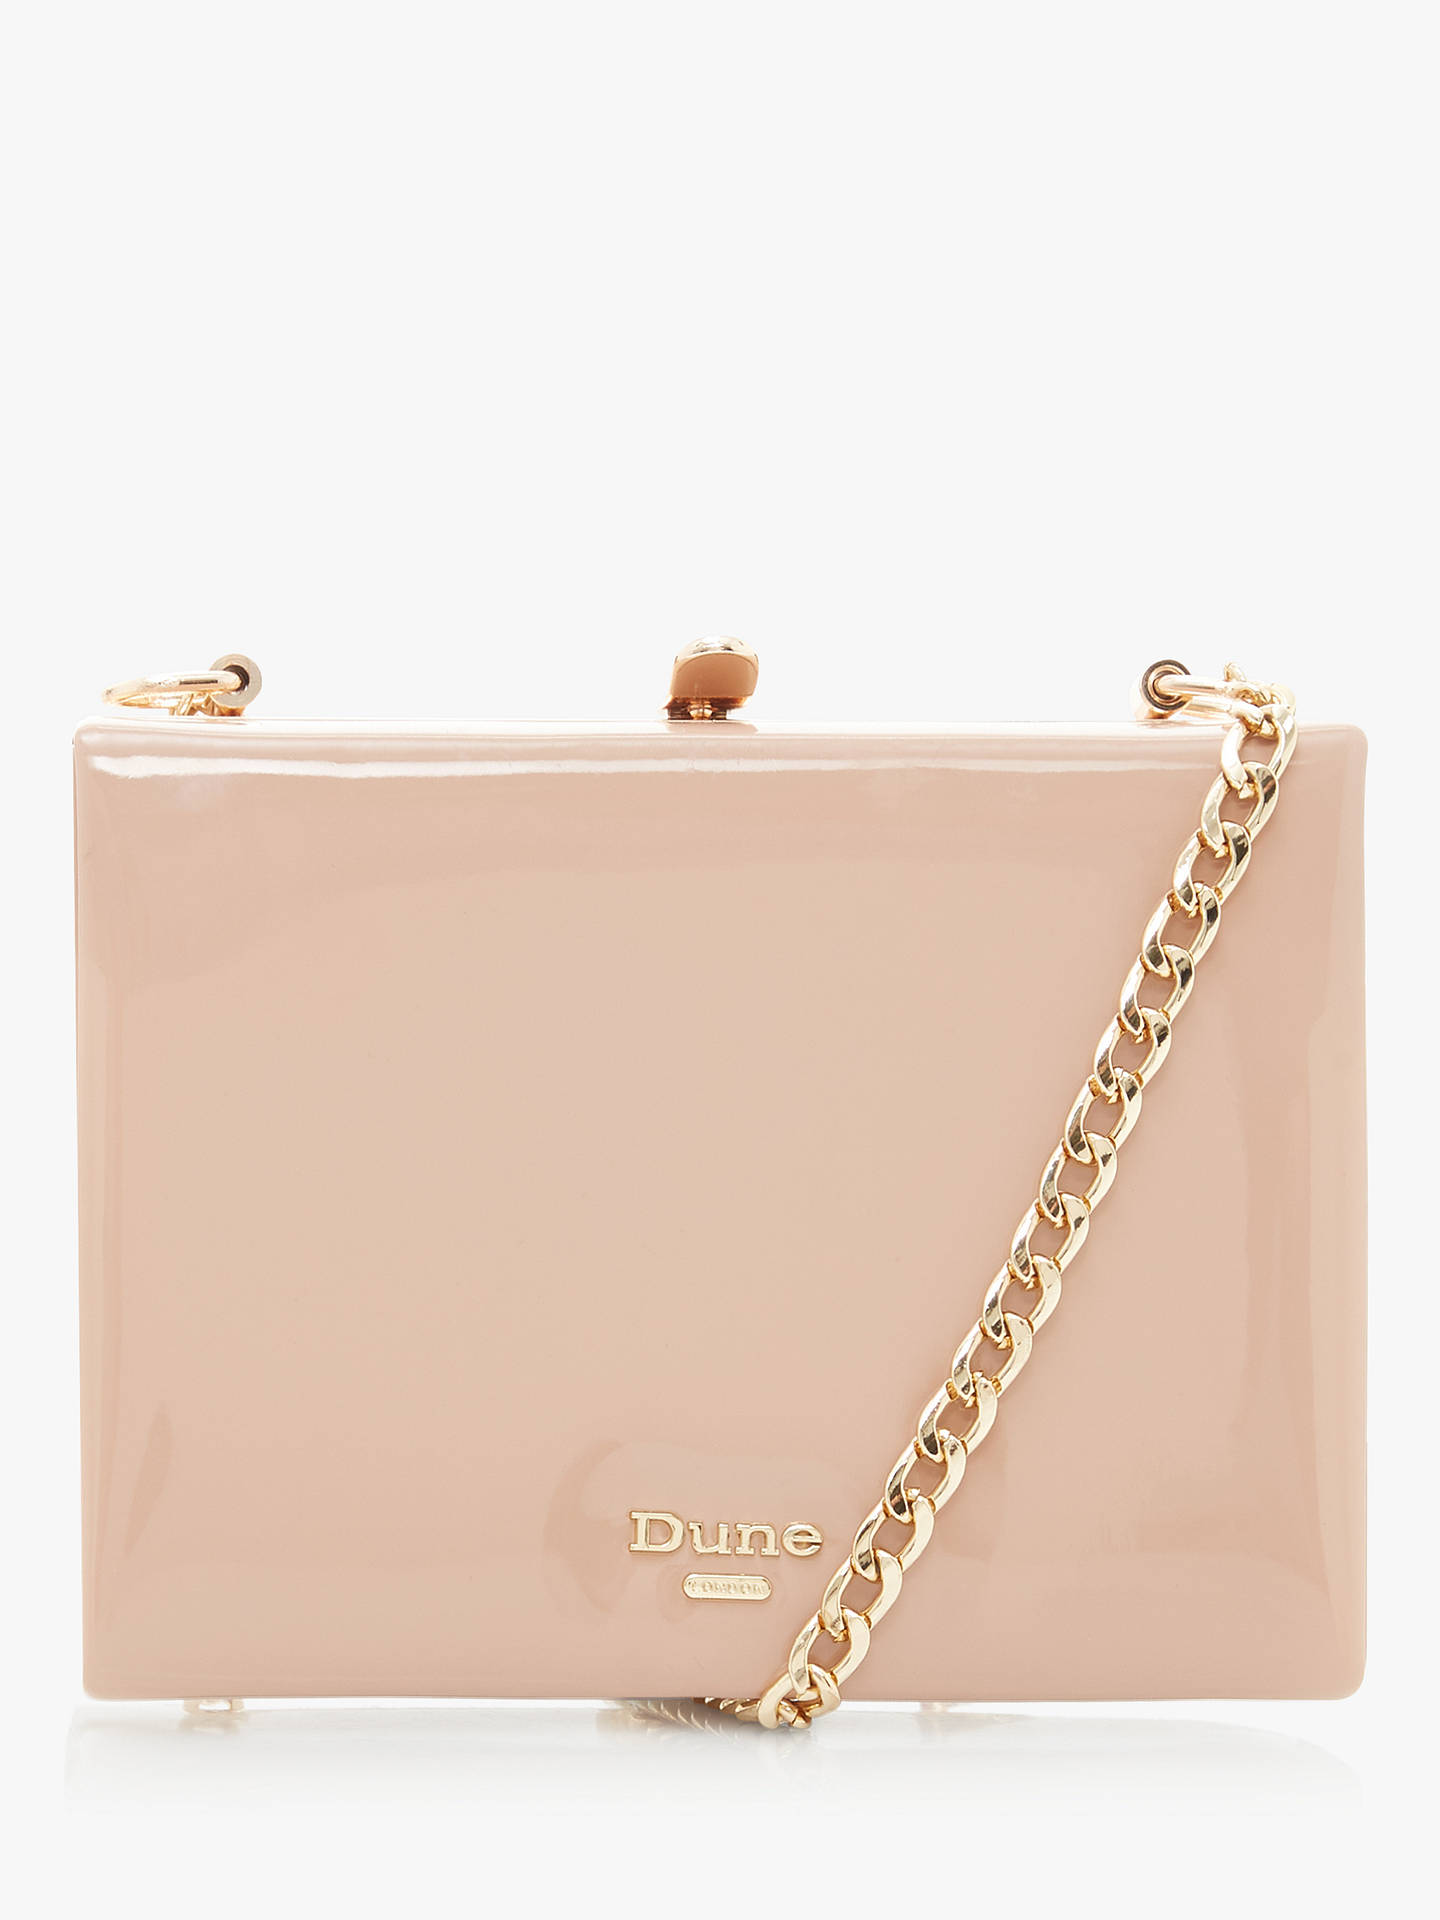 Dune Edenn Metal Frame Shoulder Bag, Cappuccino Patent by Dune